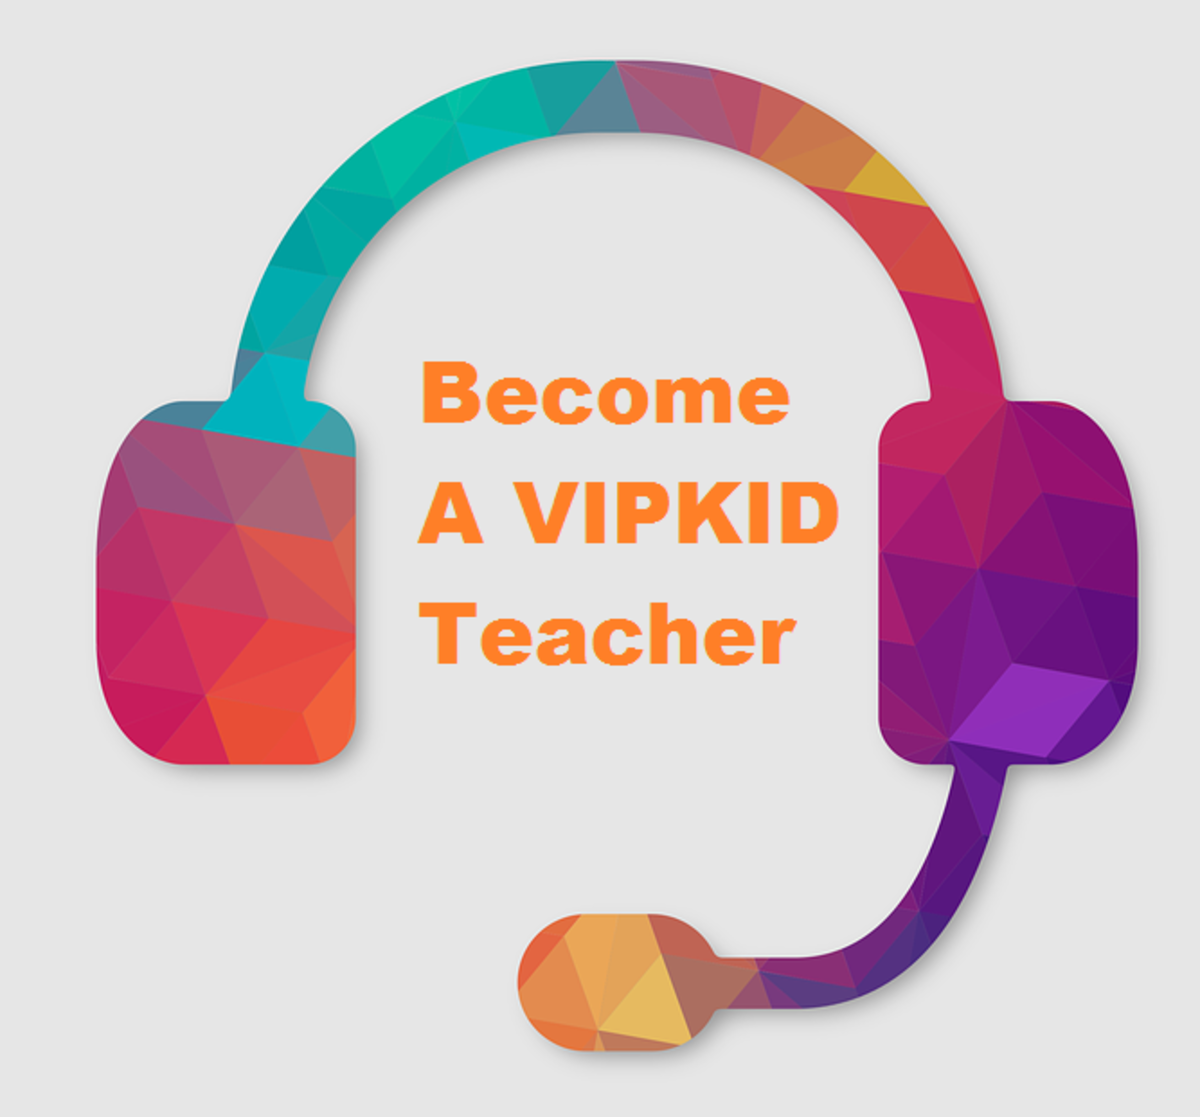 Teaching for VIPKID can give teachers options and flexibility.